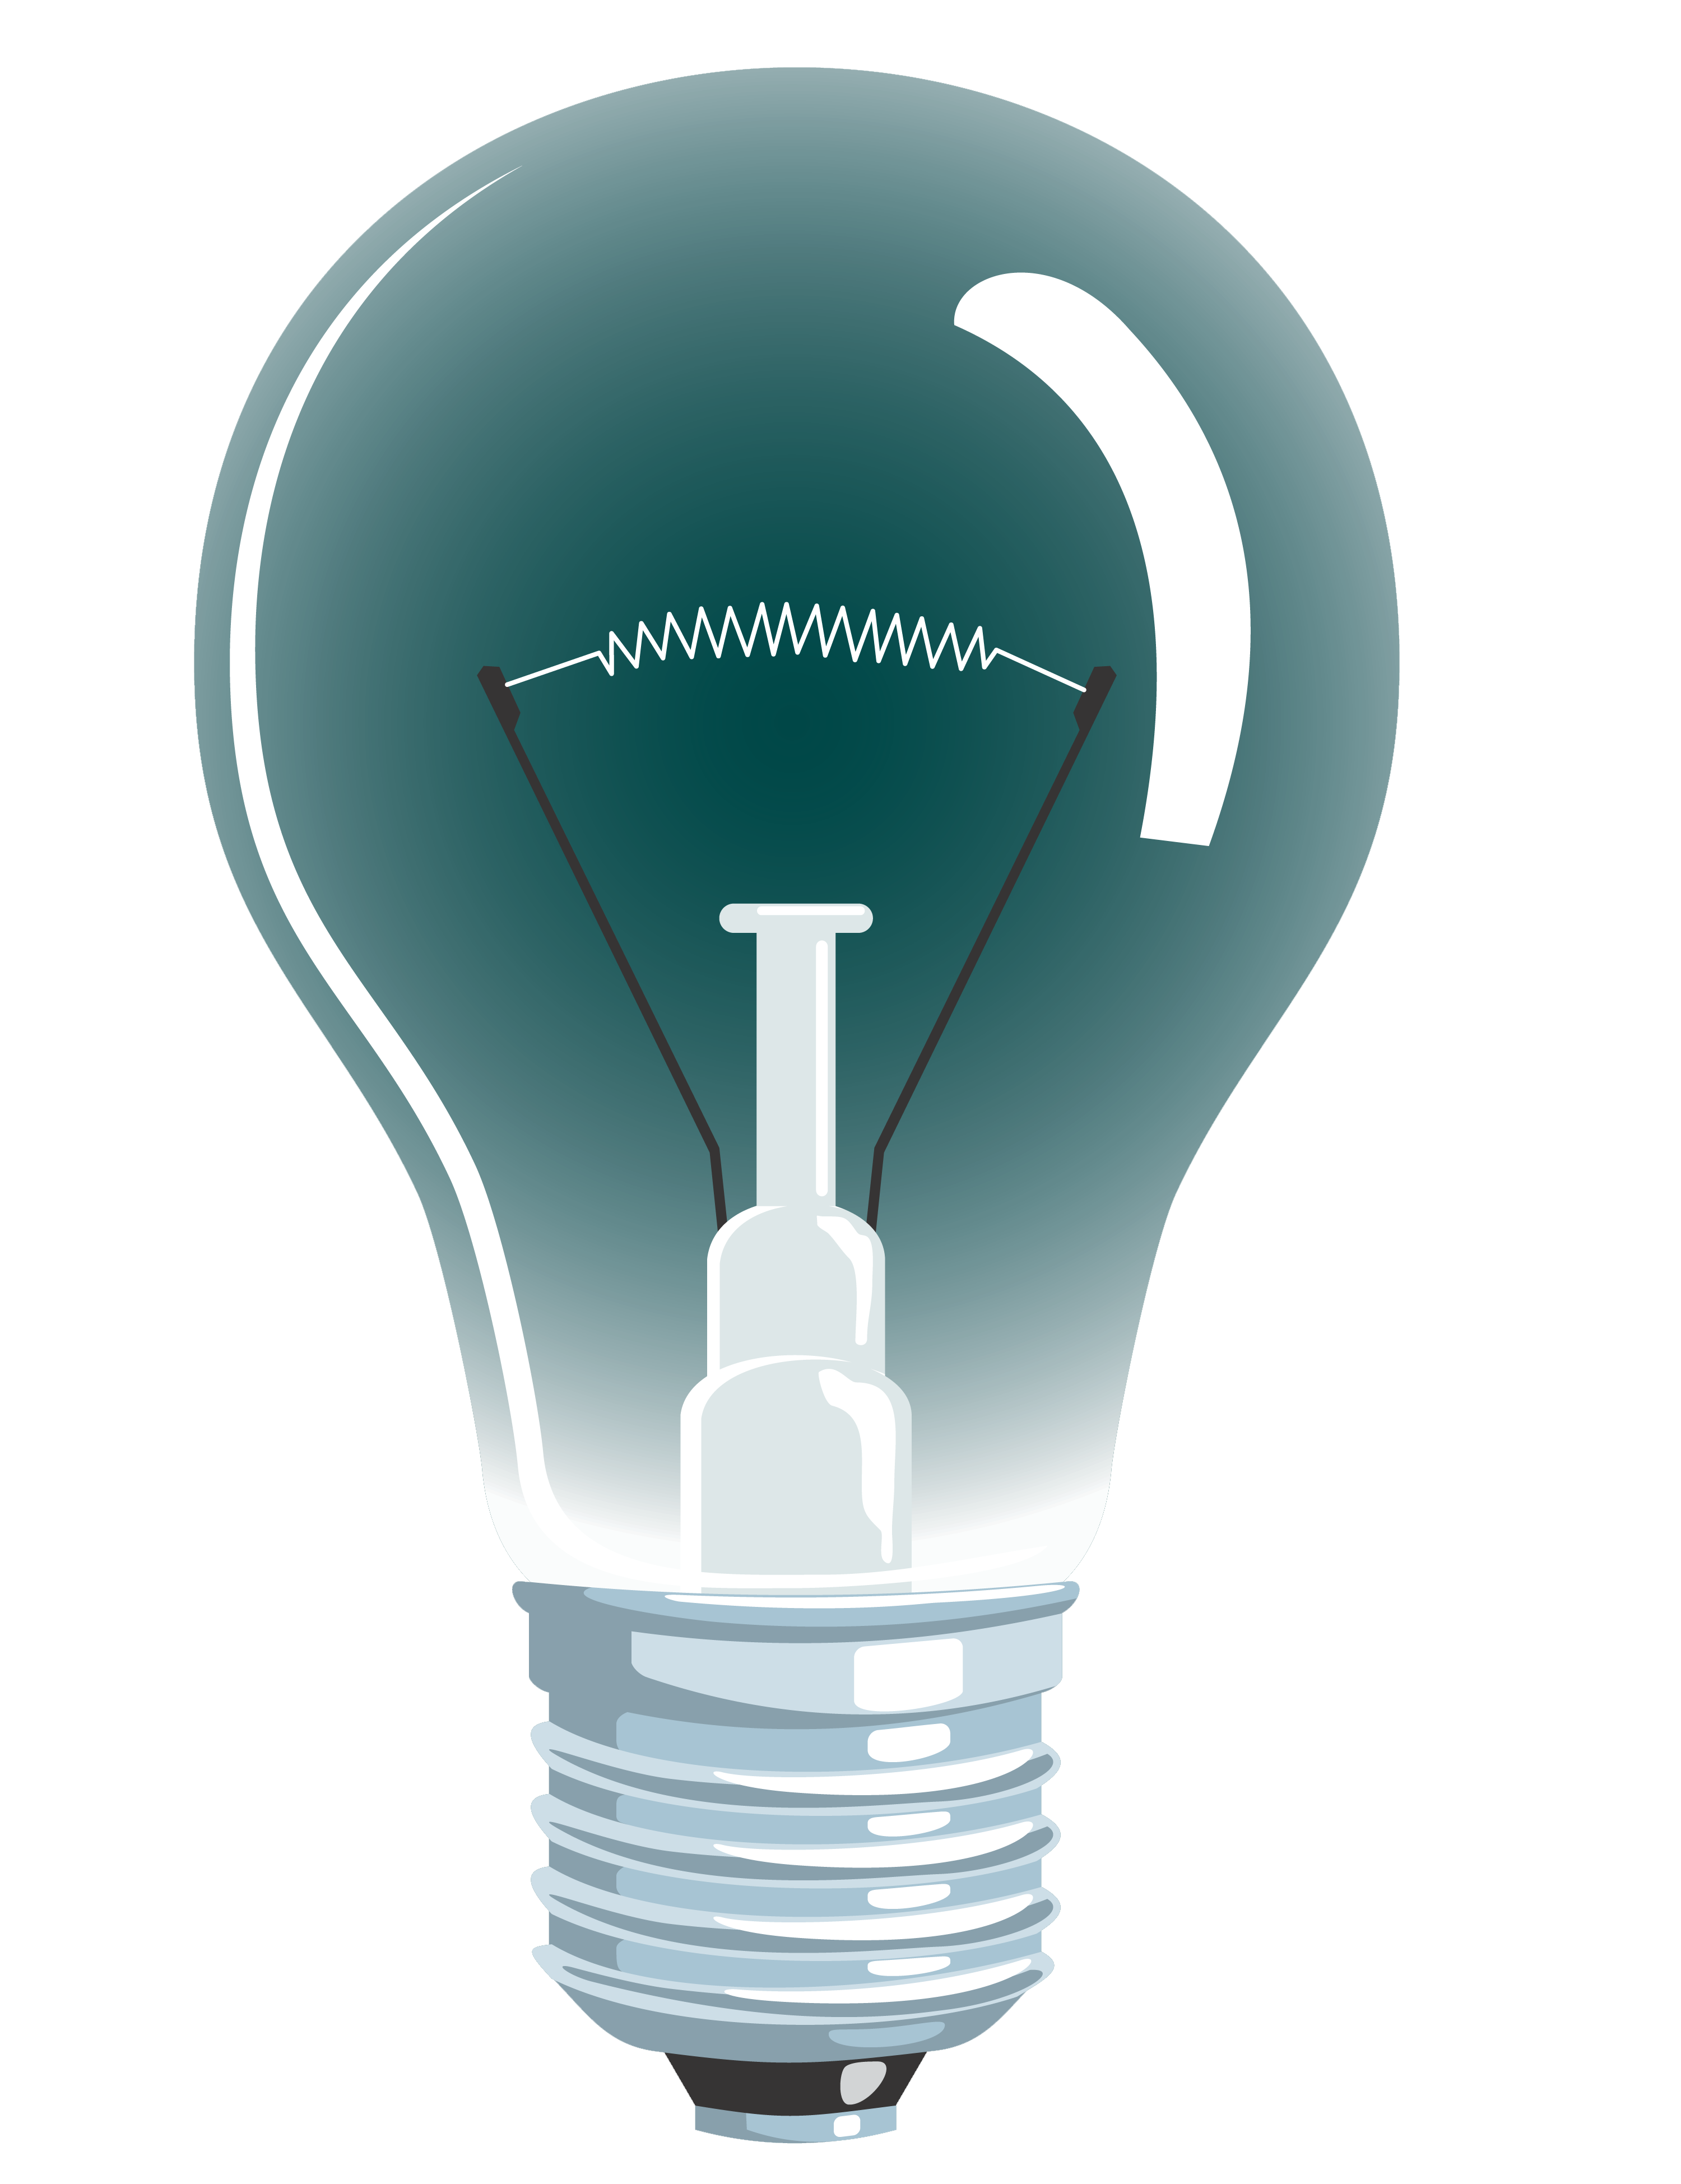 Download PNG image: bulb PNG image